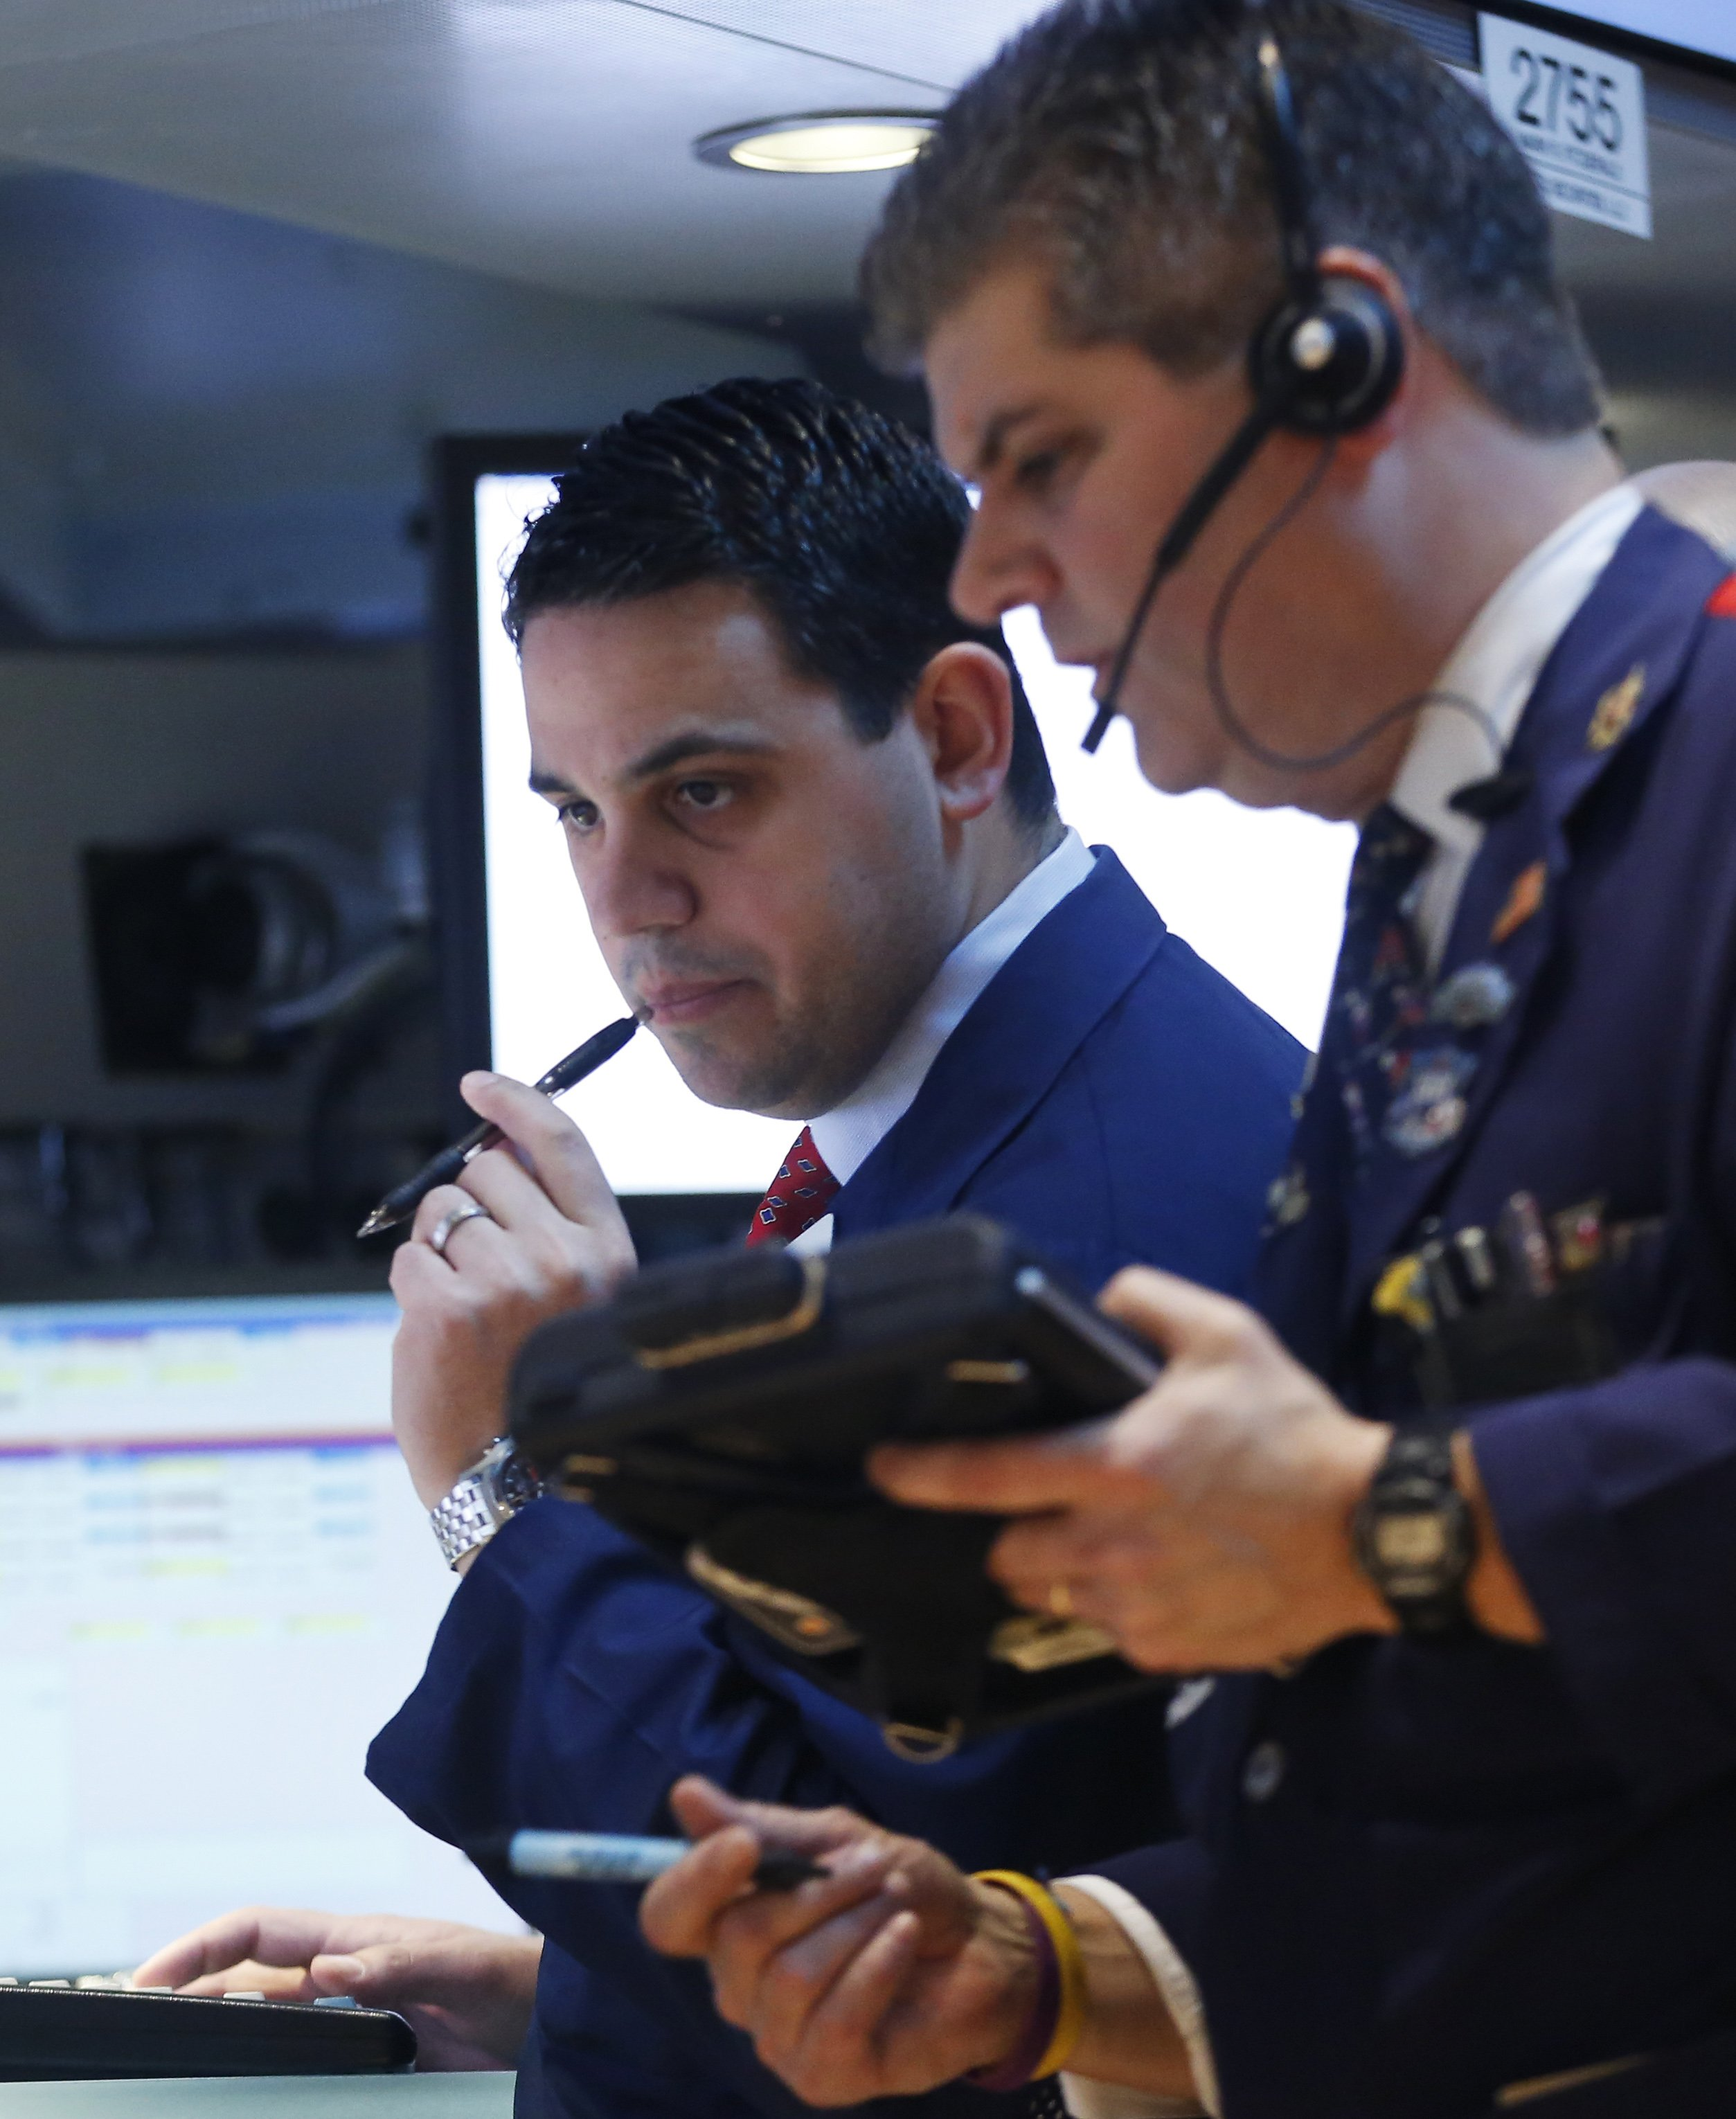 Traders at the New York Stock Exchange, January 30, 2013. REUTERS/Brendan McDermid